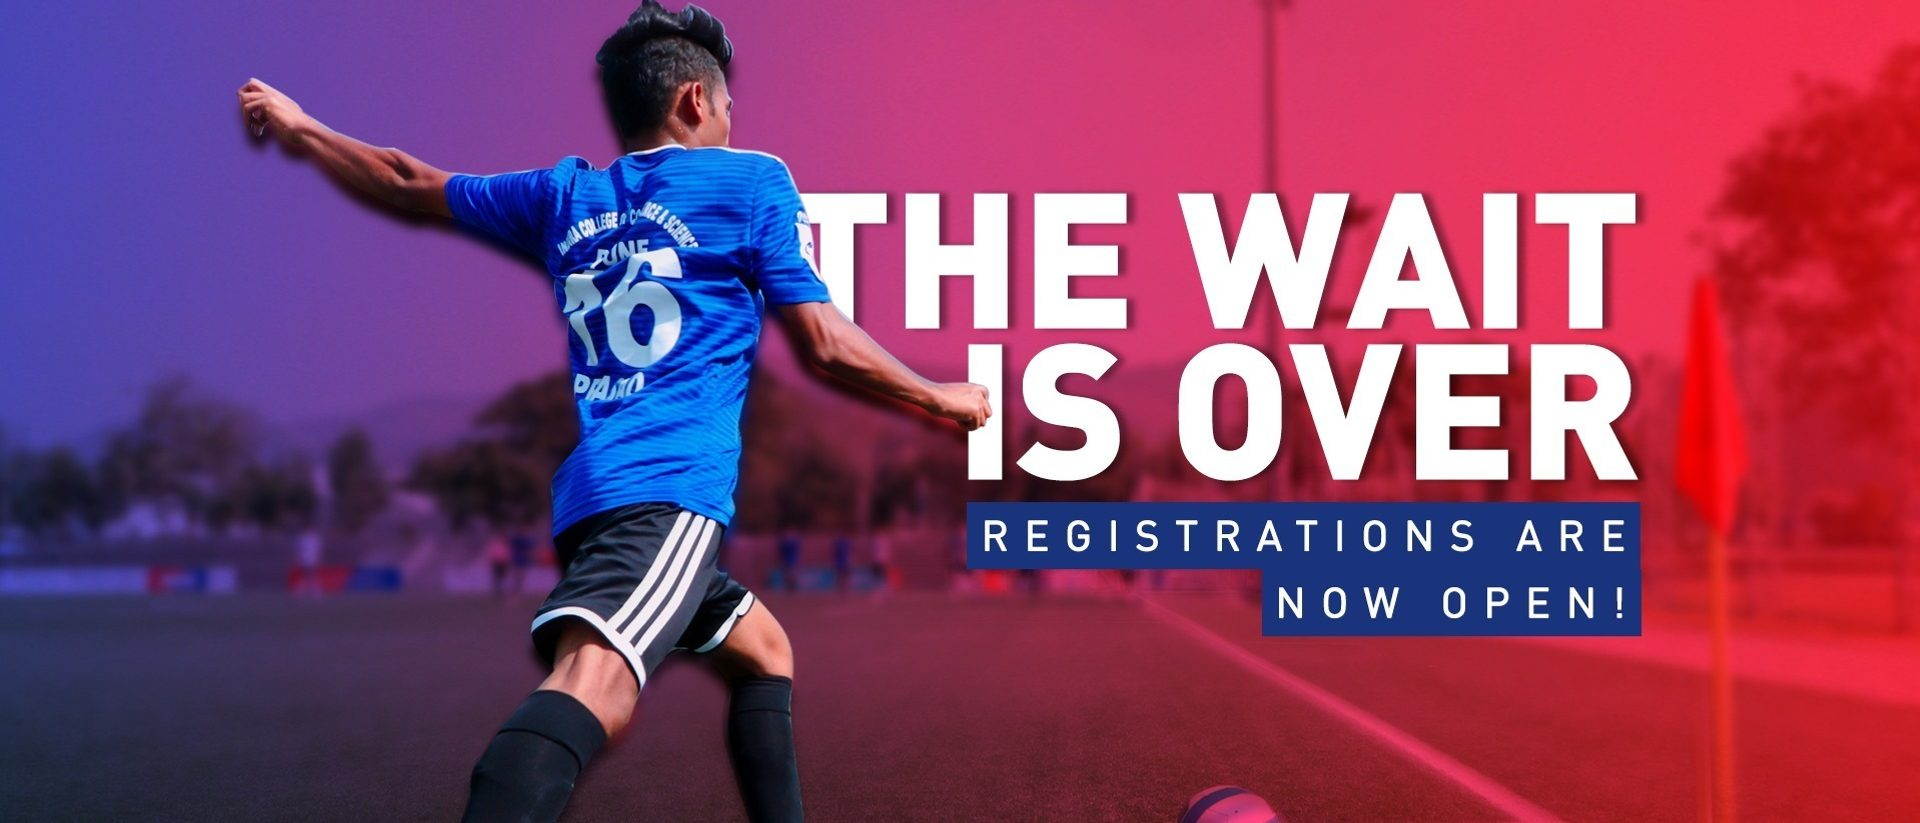 Registrations are now open for RFYS 2019-20!